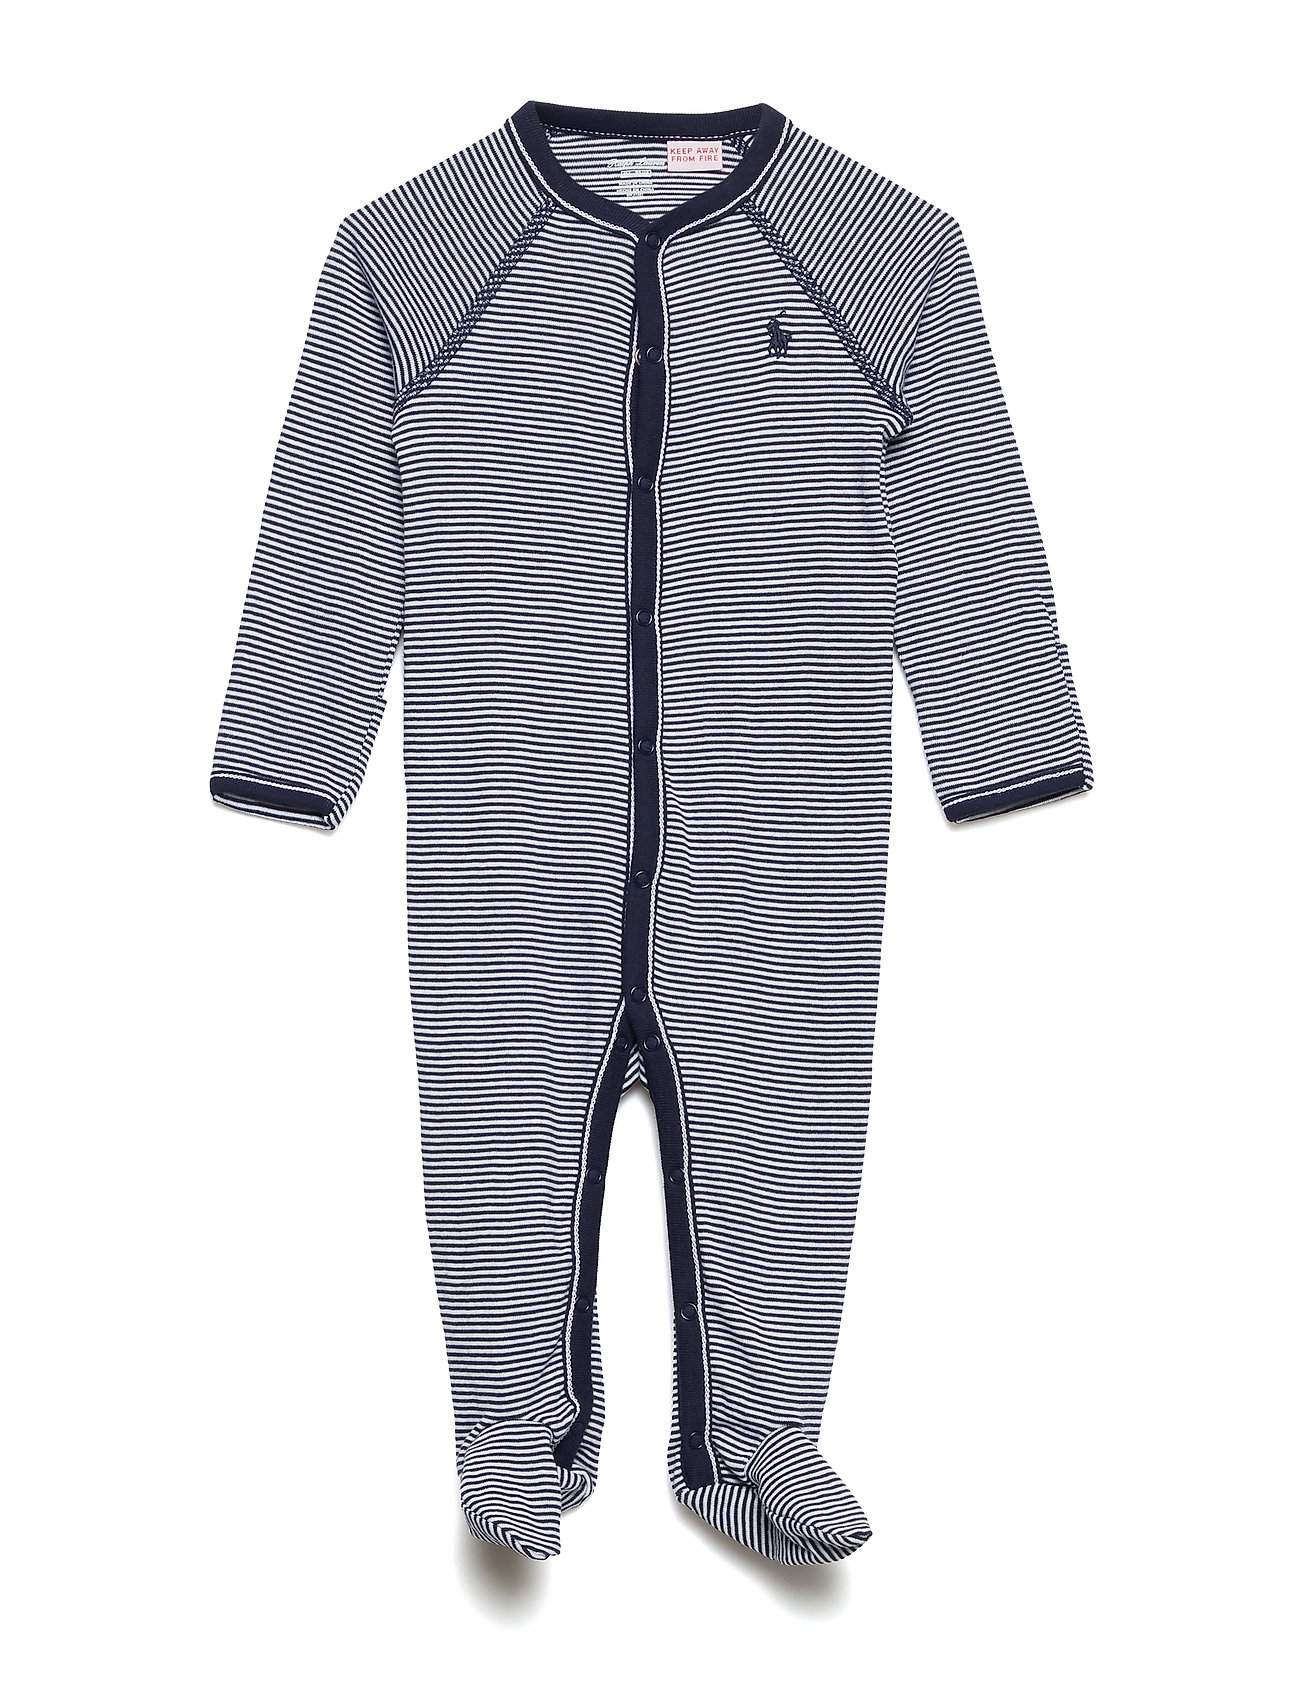 Ralph Lauren Baby Striped Cotton Jersey Coverall - FRENCH NAVY MULTI